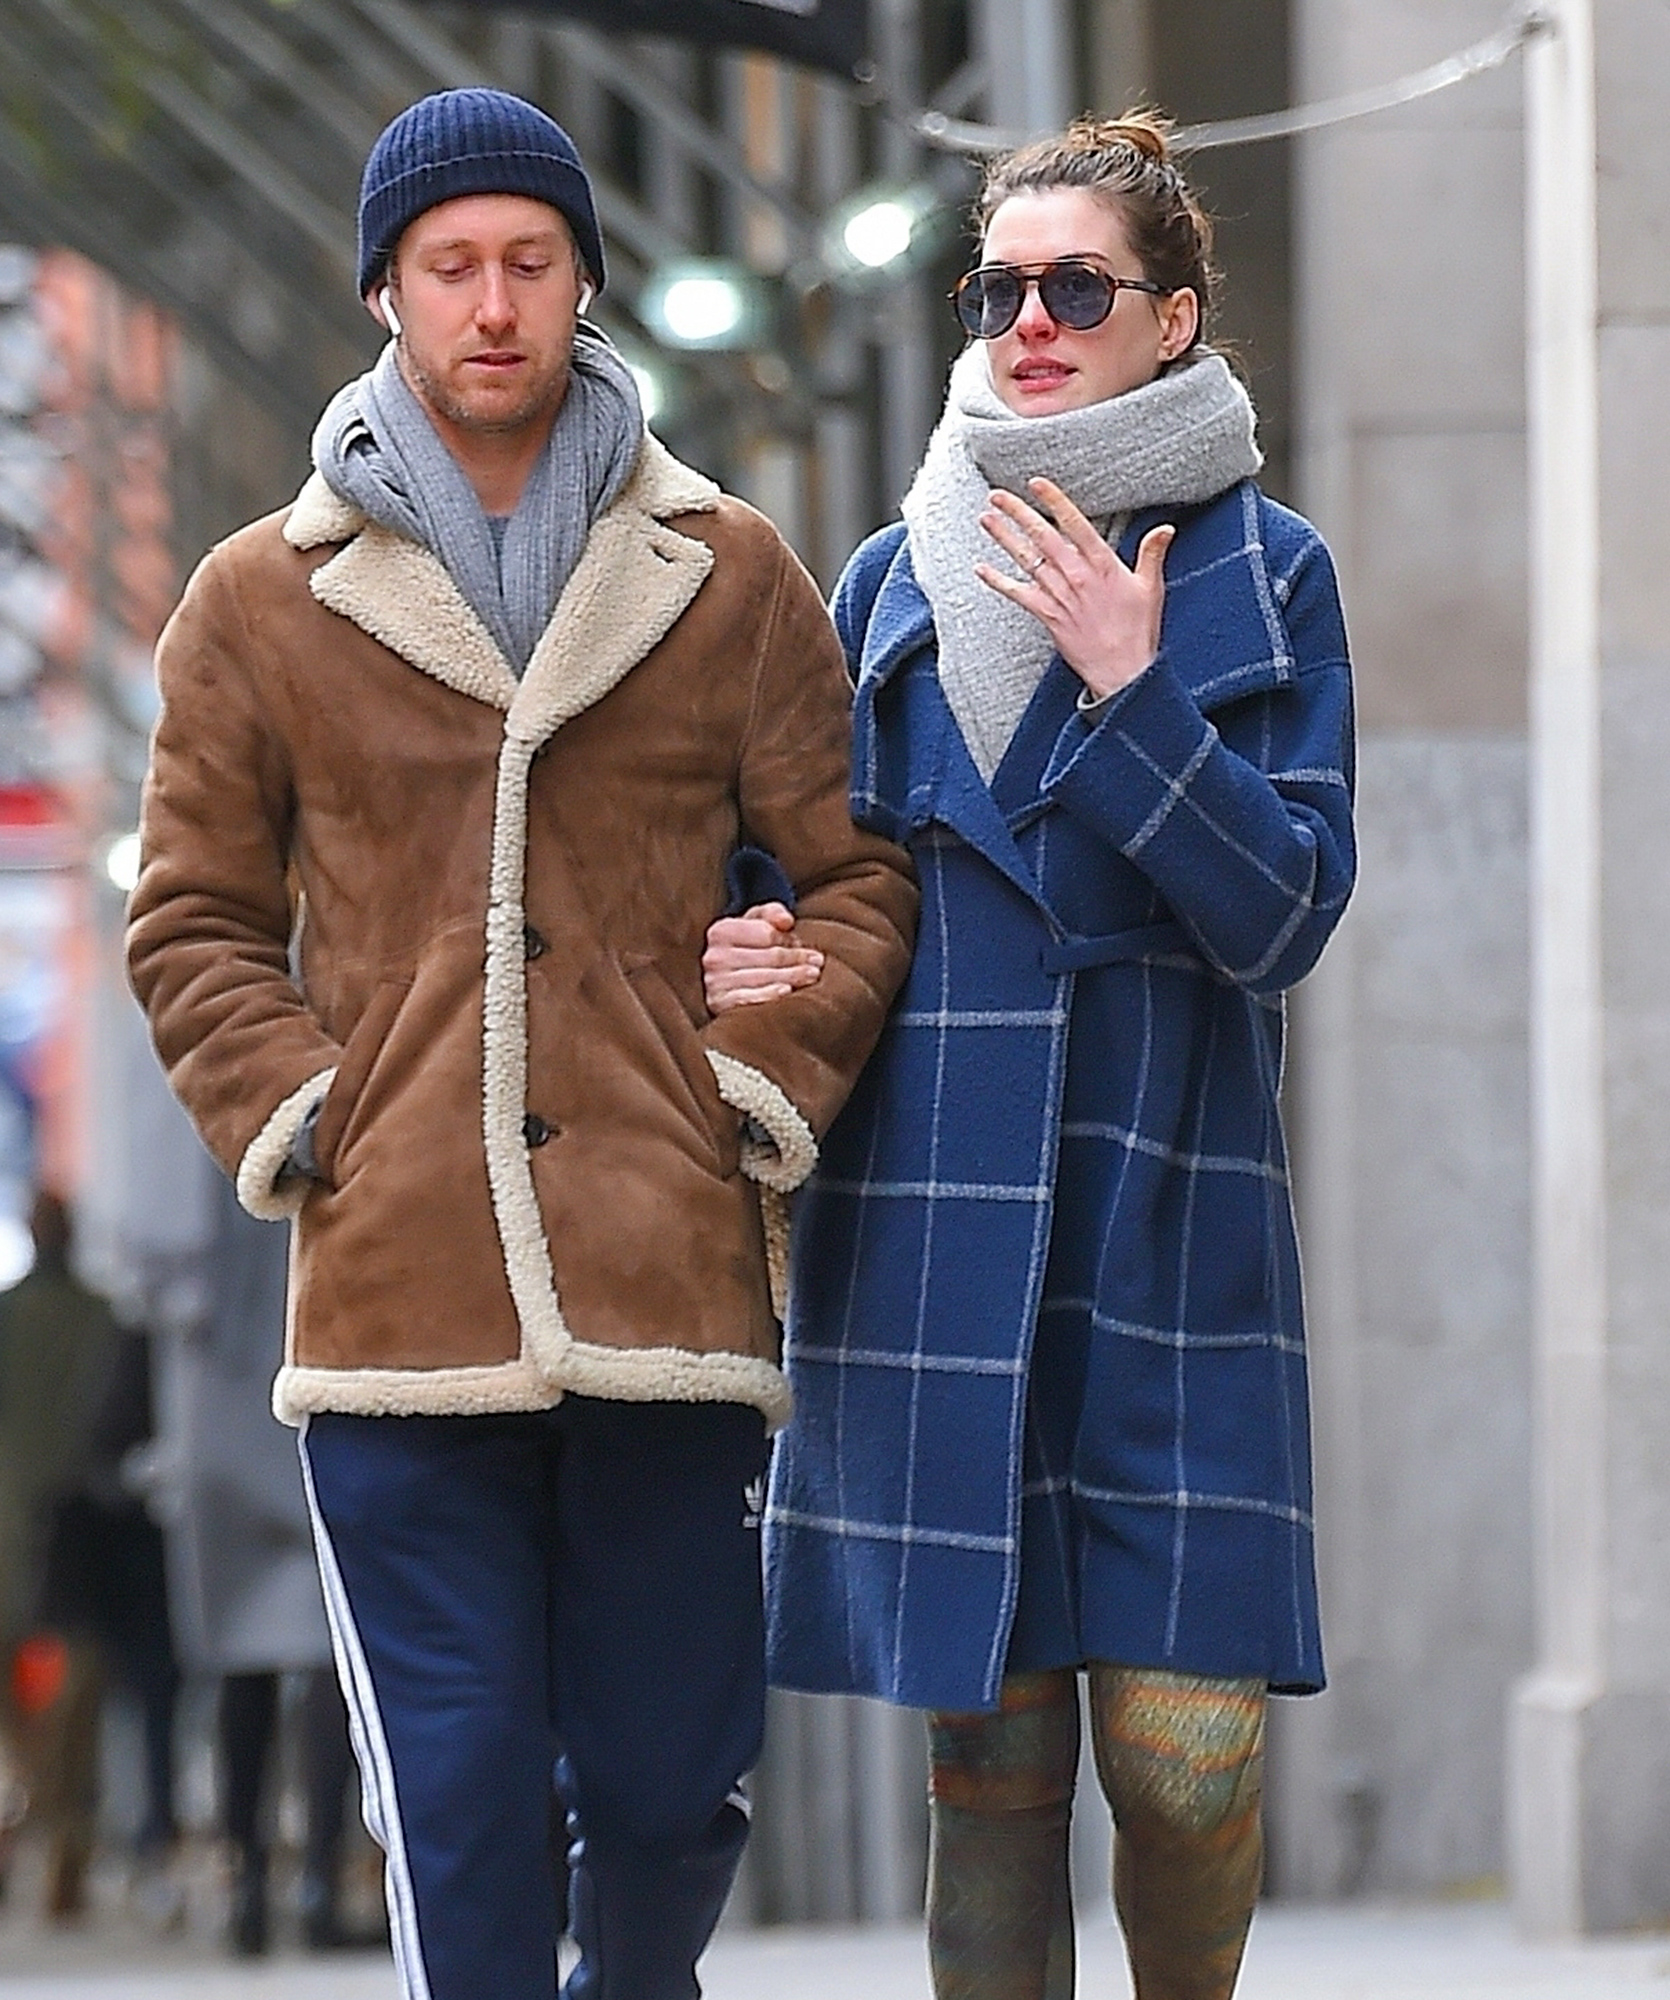 *EXCLUSIVE* Anne Hathaway and Adam Shulman head to the gym together